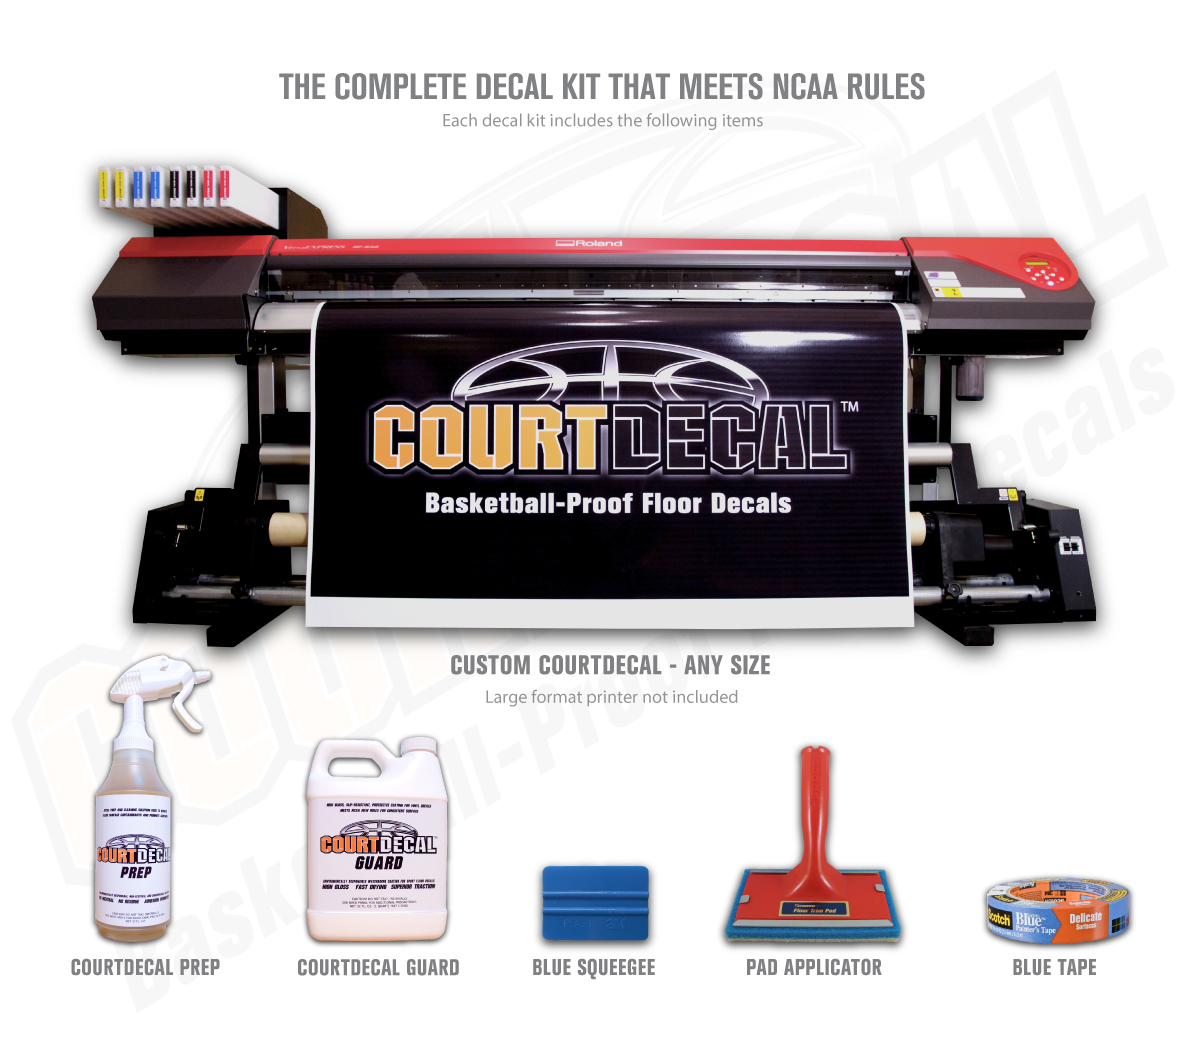 COURTDECAL - BASKETBALL PROOF COURT FLOOR DECALS THAT ARE REMOVABLE AND MEET NEW NCAA RULES FOR CONSISTENT SURFACE